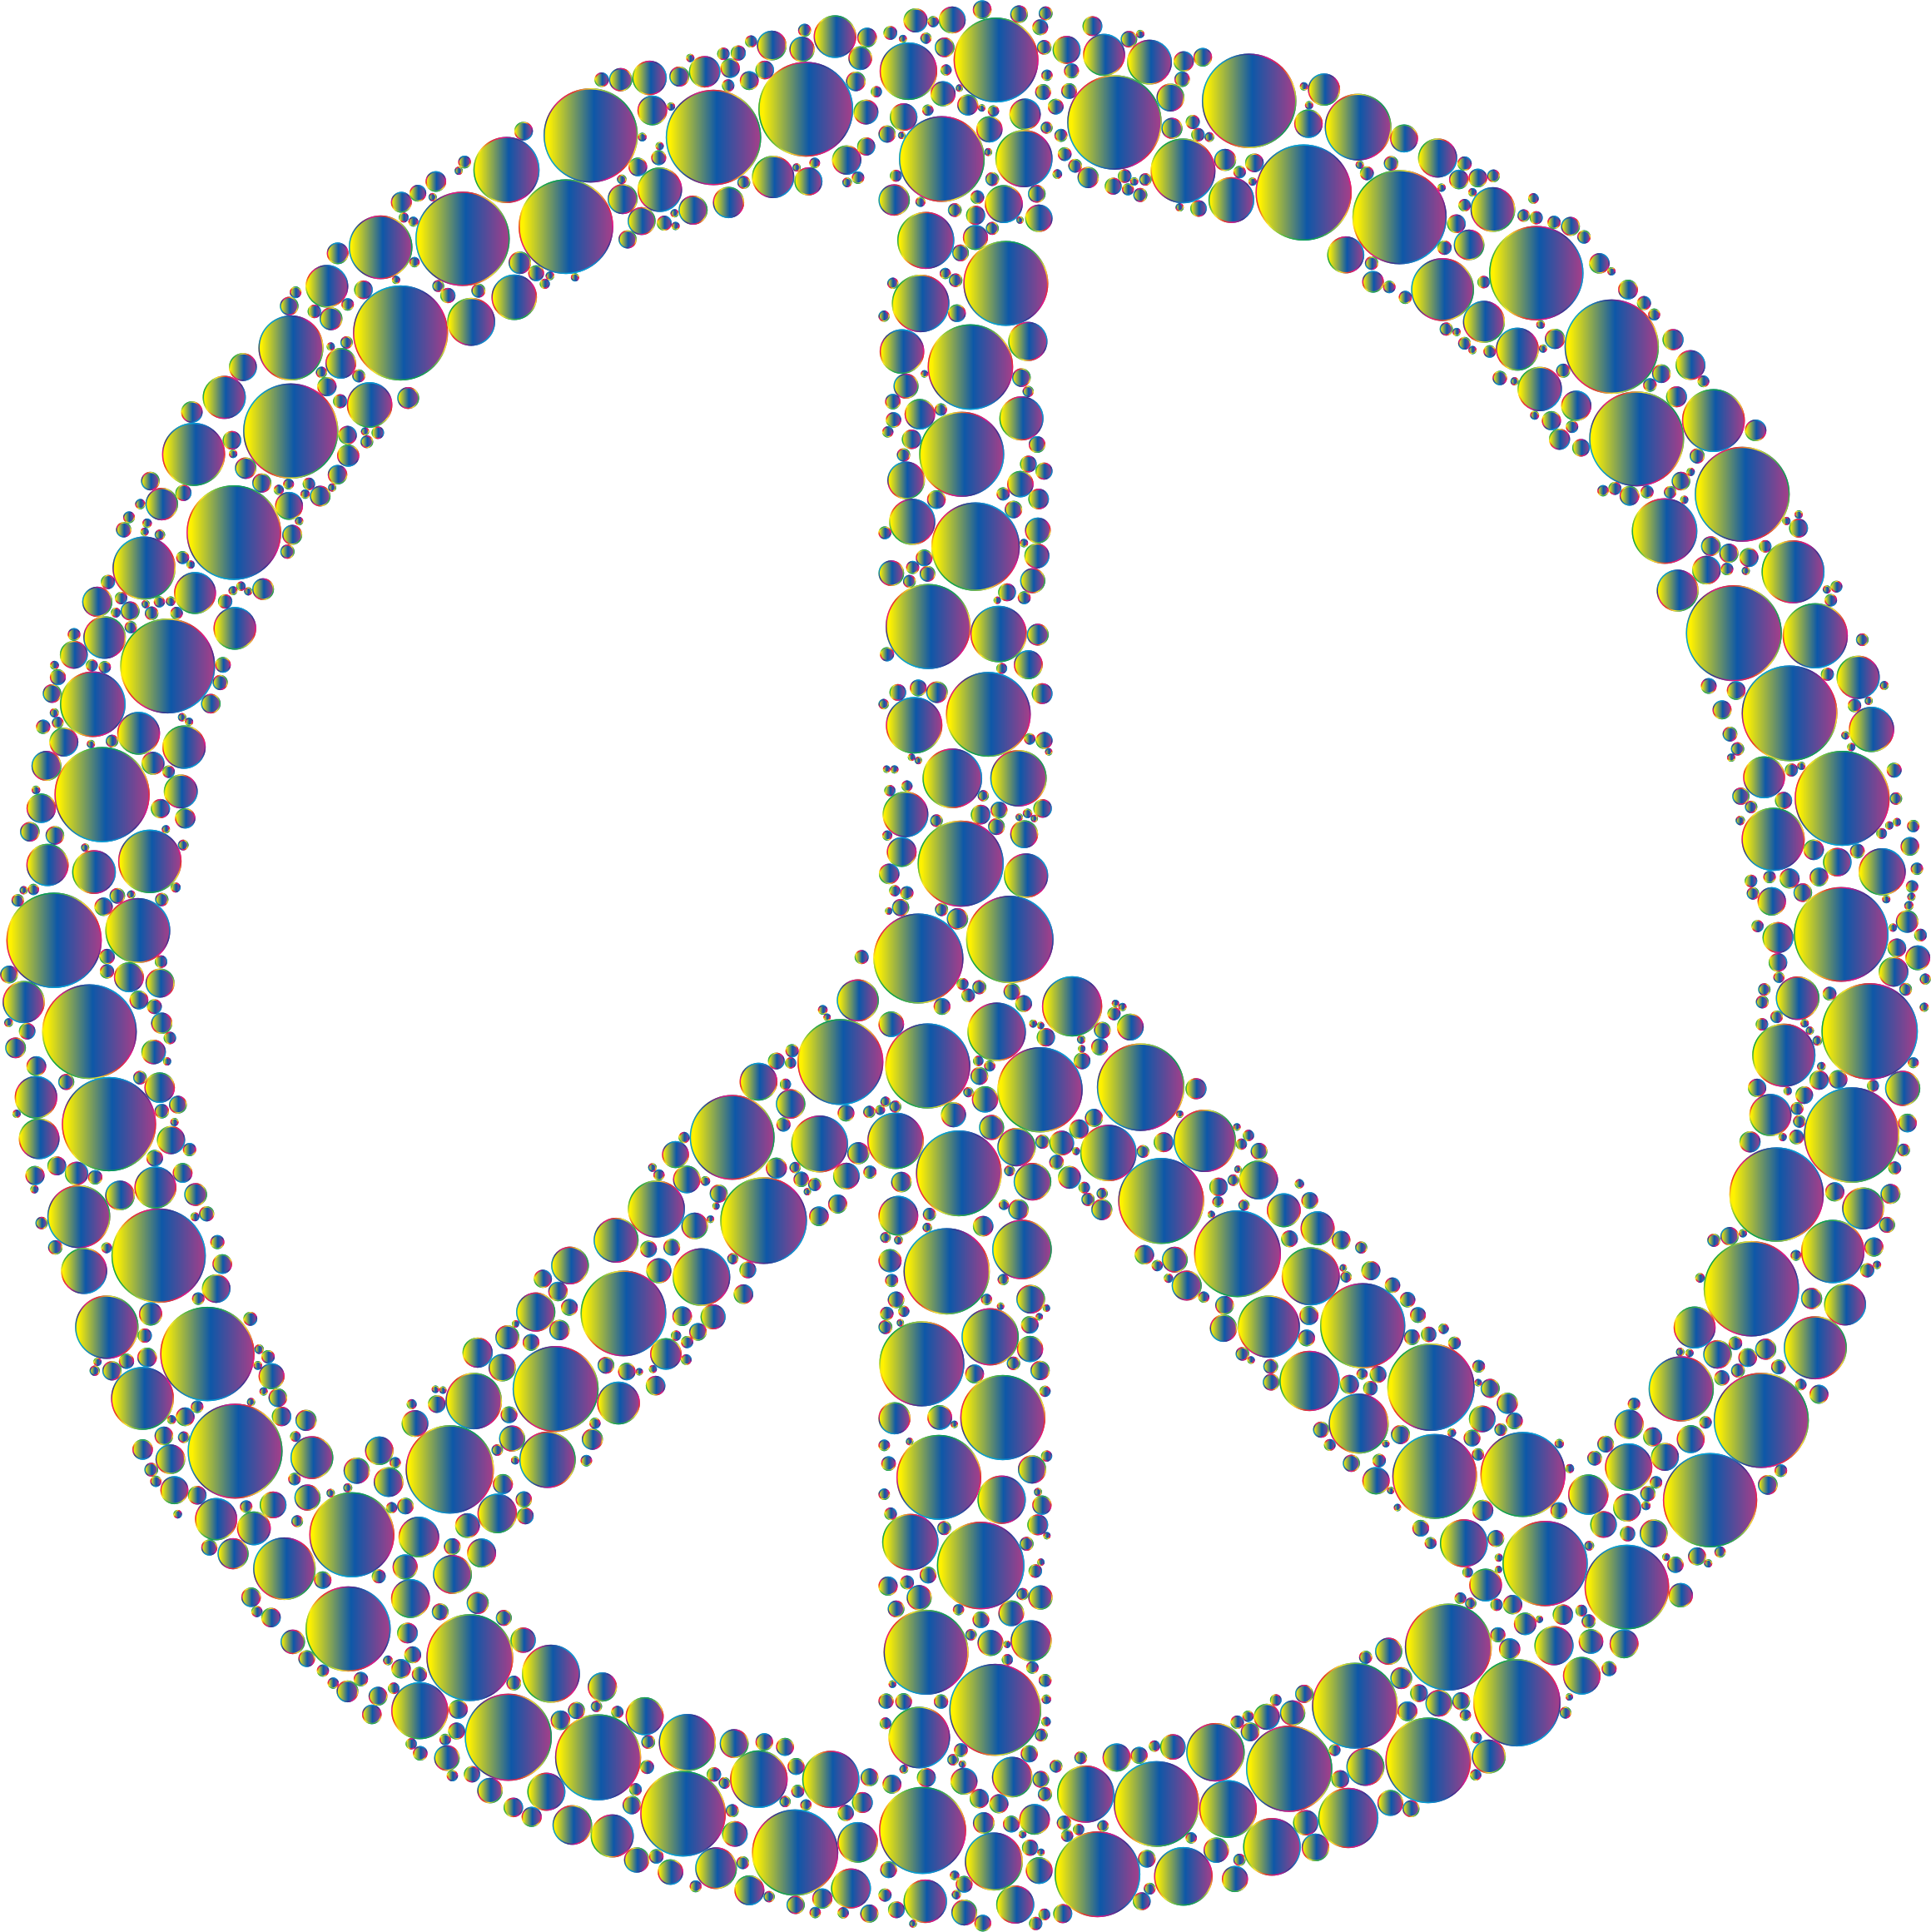 Colorful Circles Peace Sign 23 Without Background by GDJ